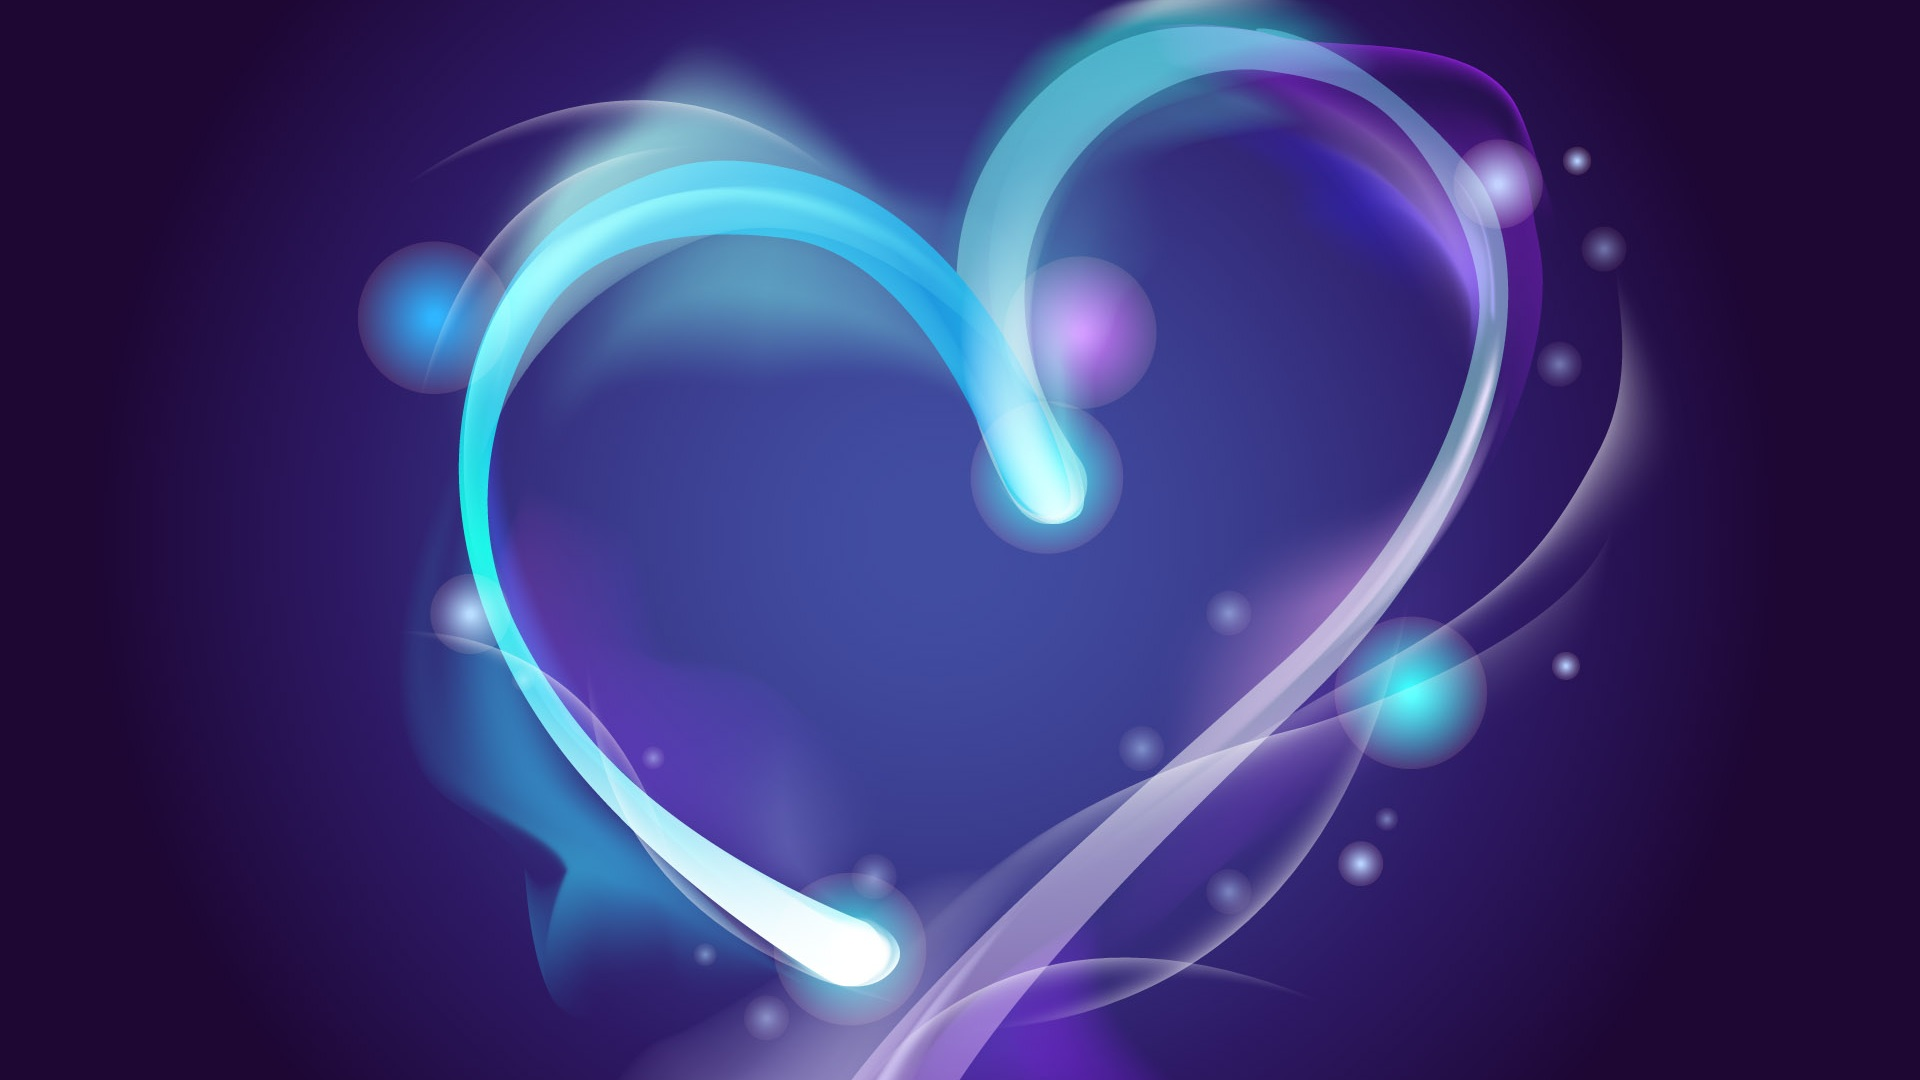 Wallpaper Blue Aura Of Love 1920x1200 Hd Picture Image